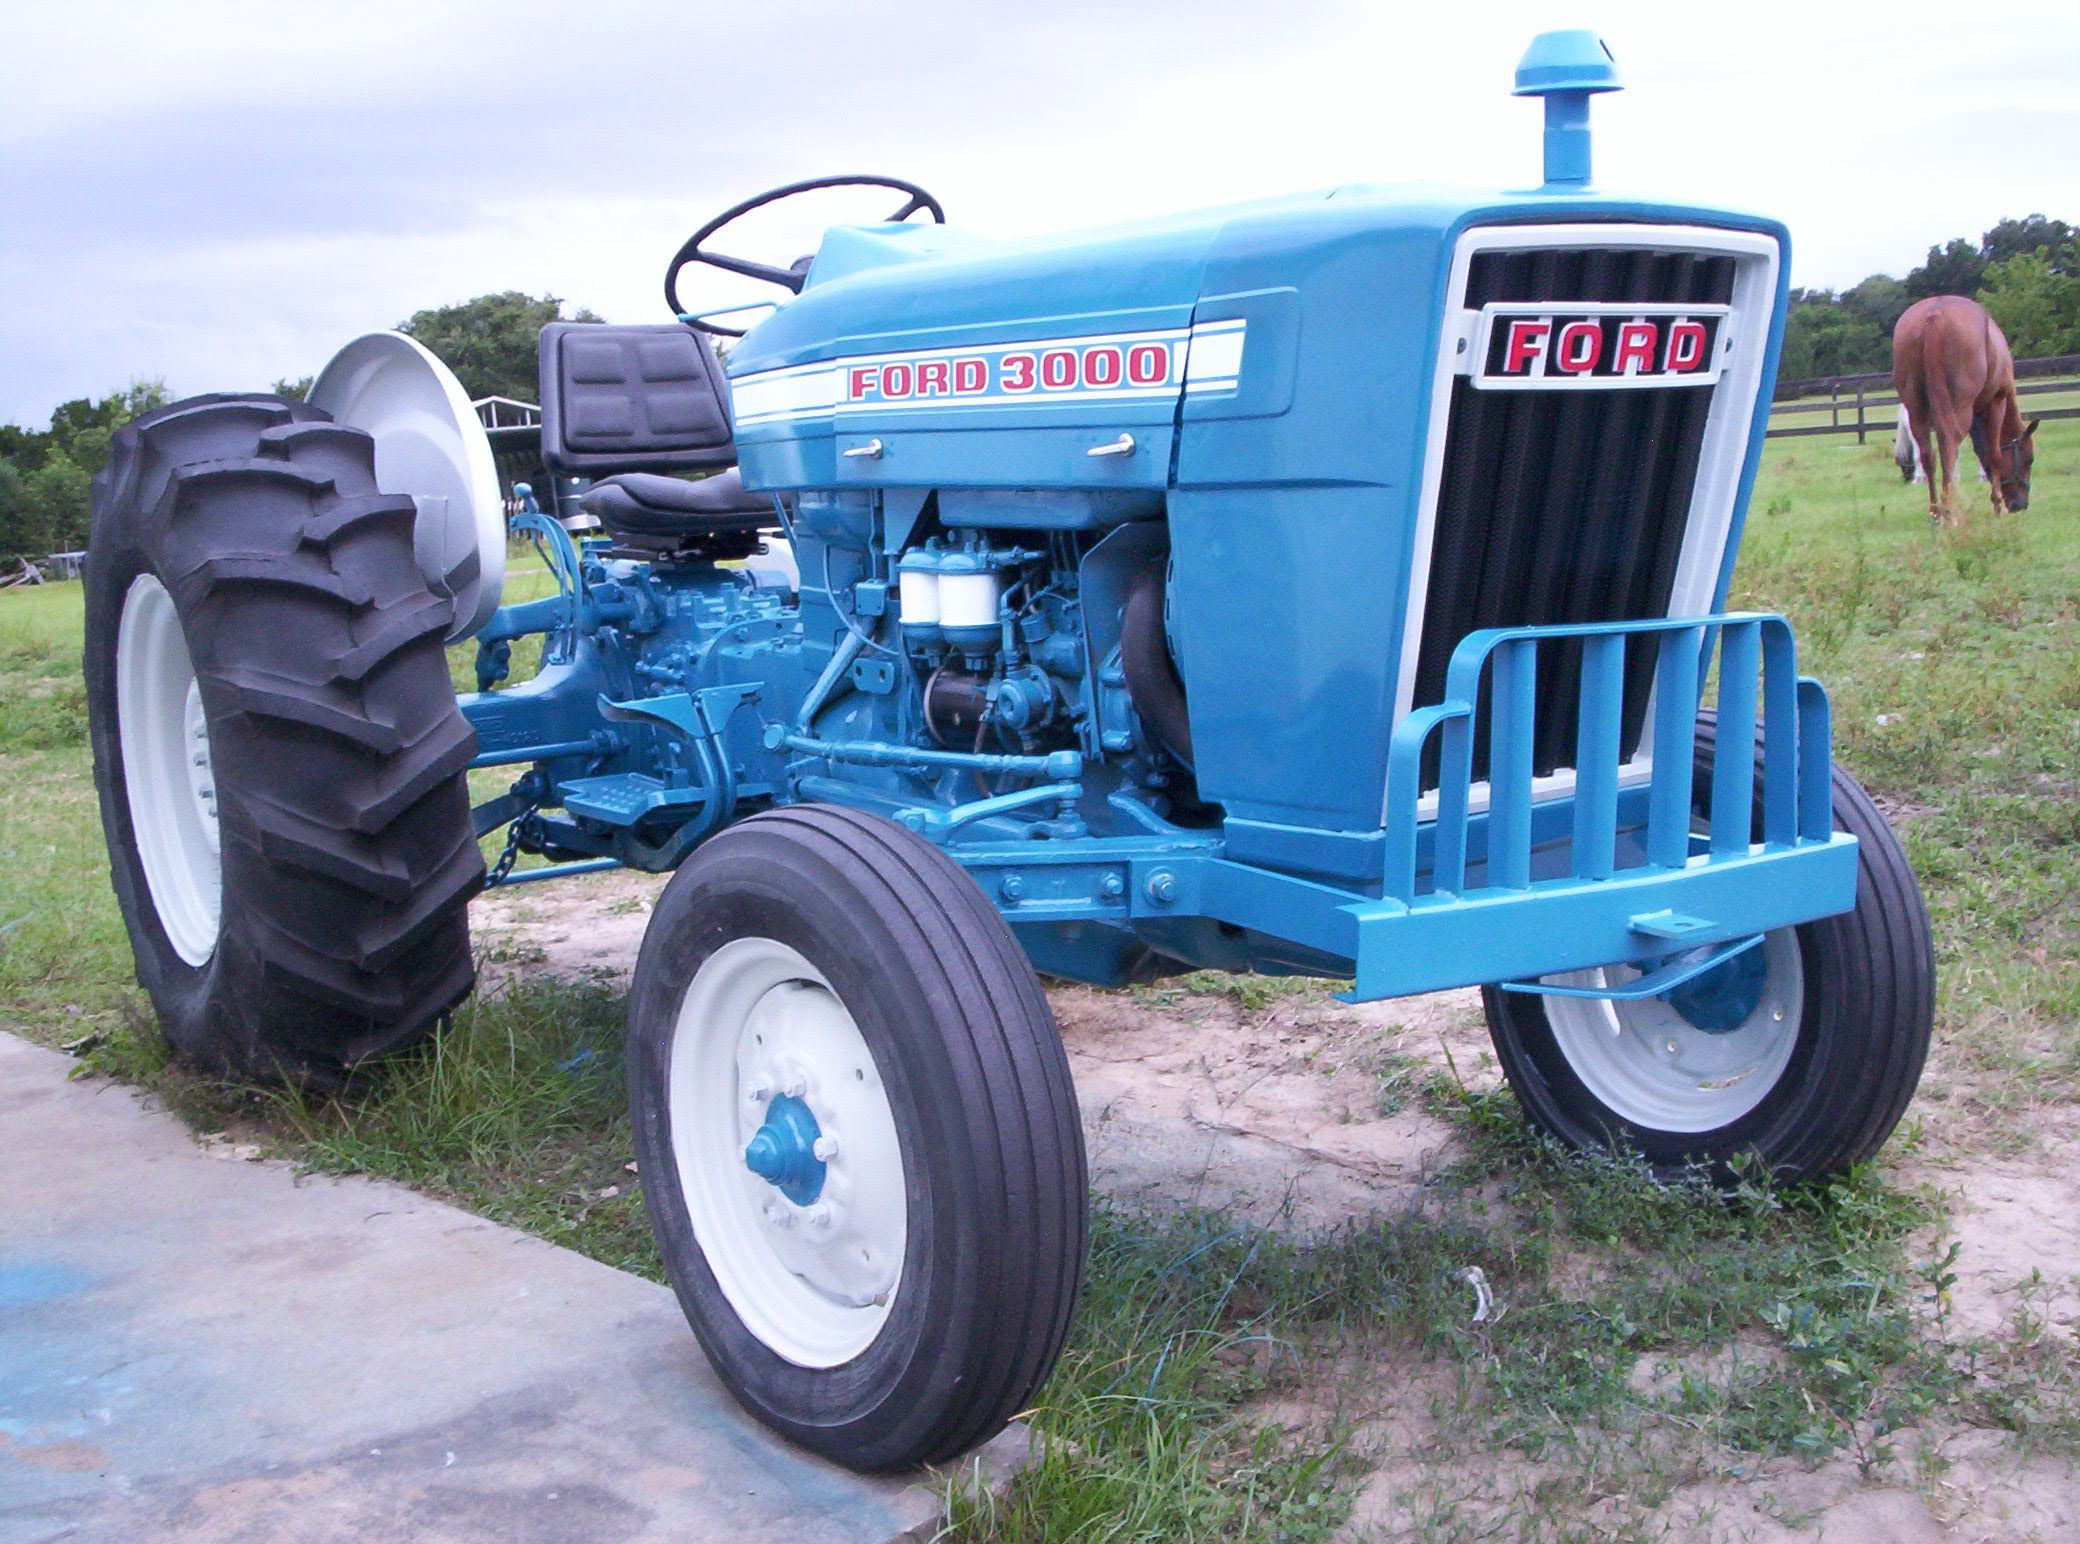 1975 Ford 3000 Tractor : Ford tractor imgkid the image kid has it